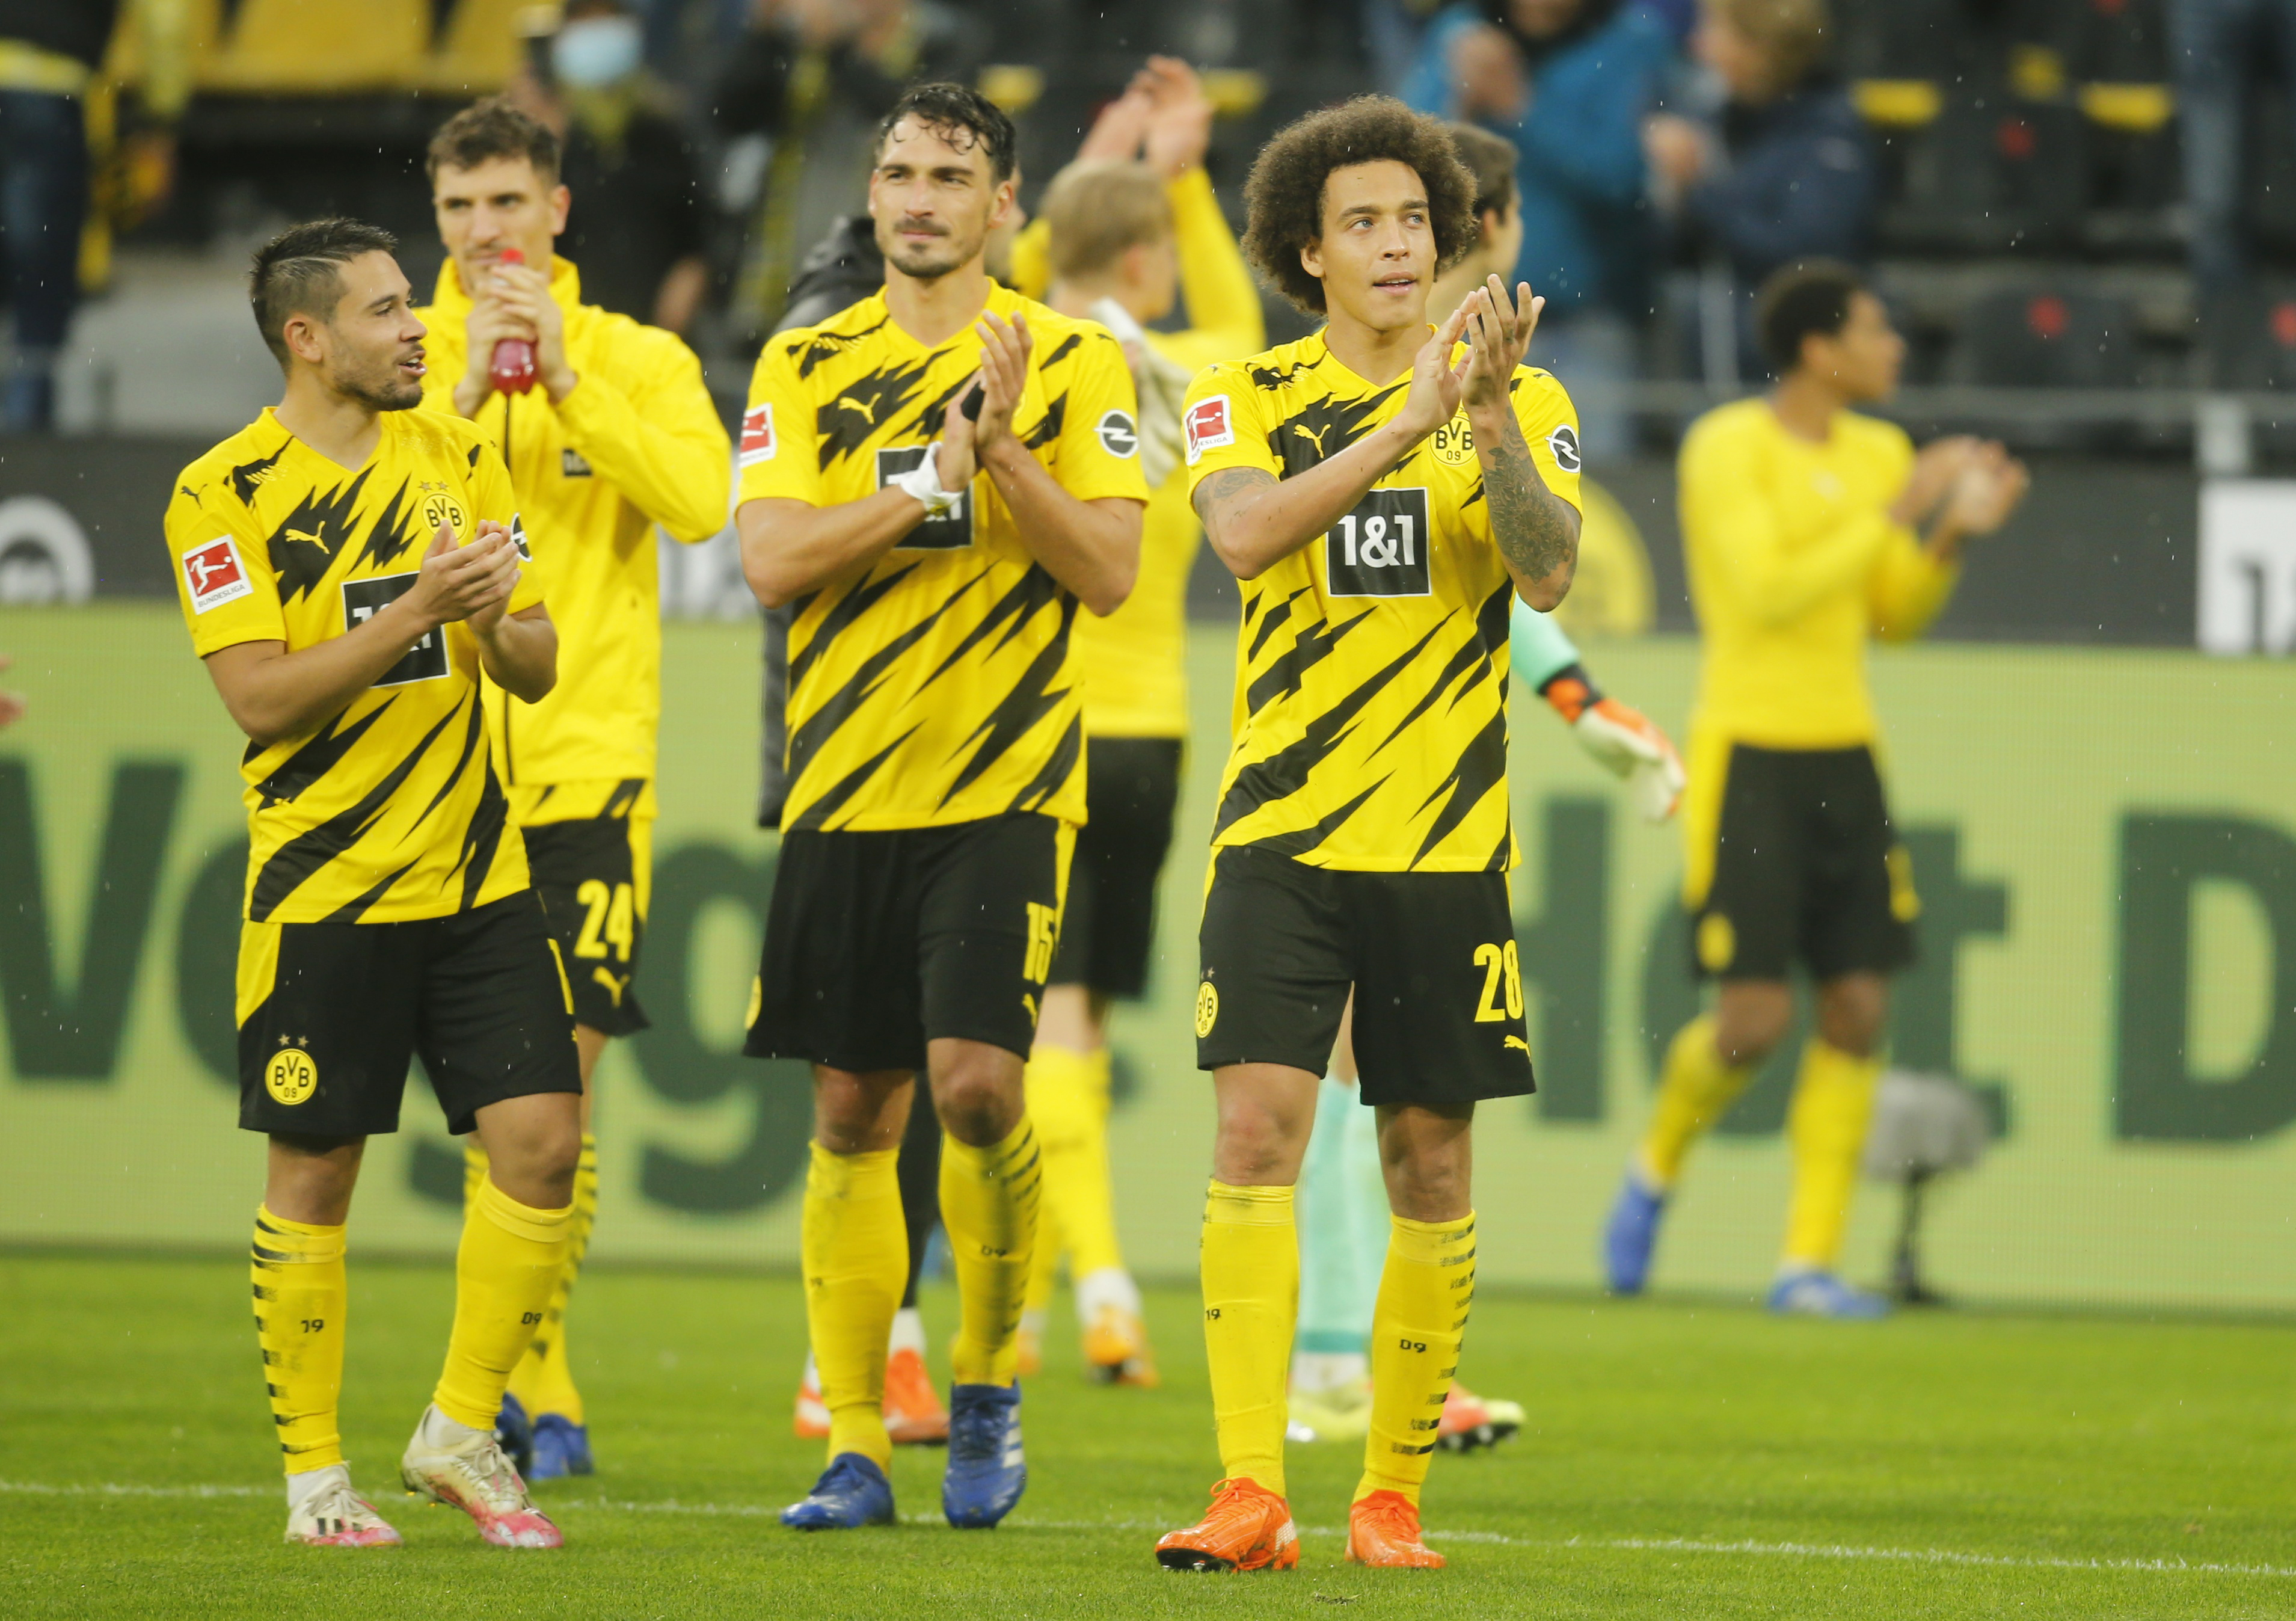 Borussia Dortmund's Mats Hummels and Axel Witsel applaud fans after the match. Photo: Reuters